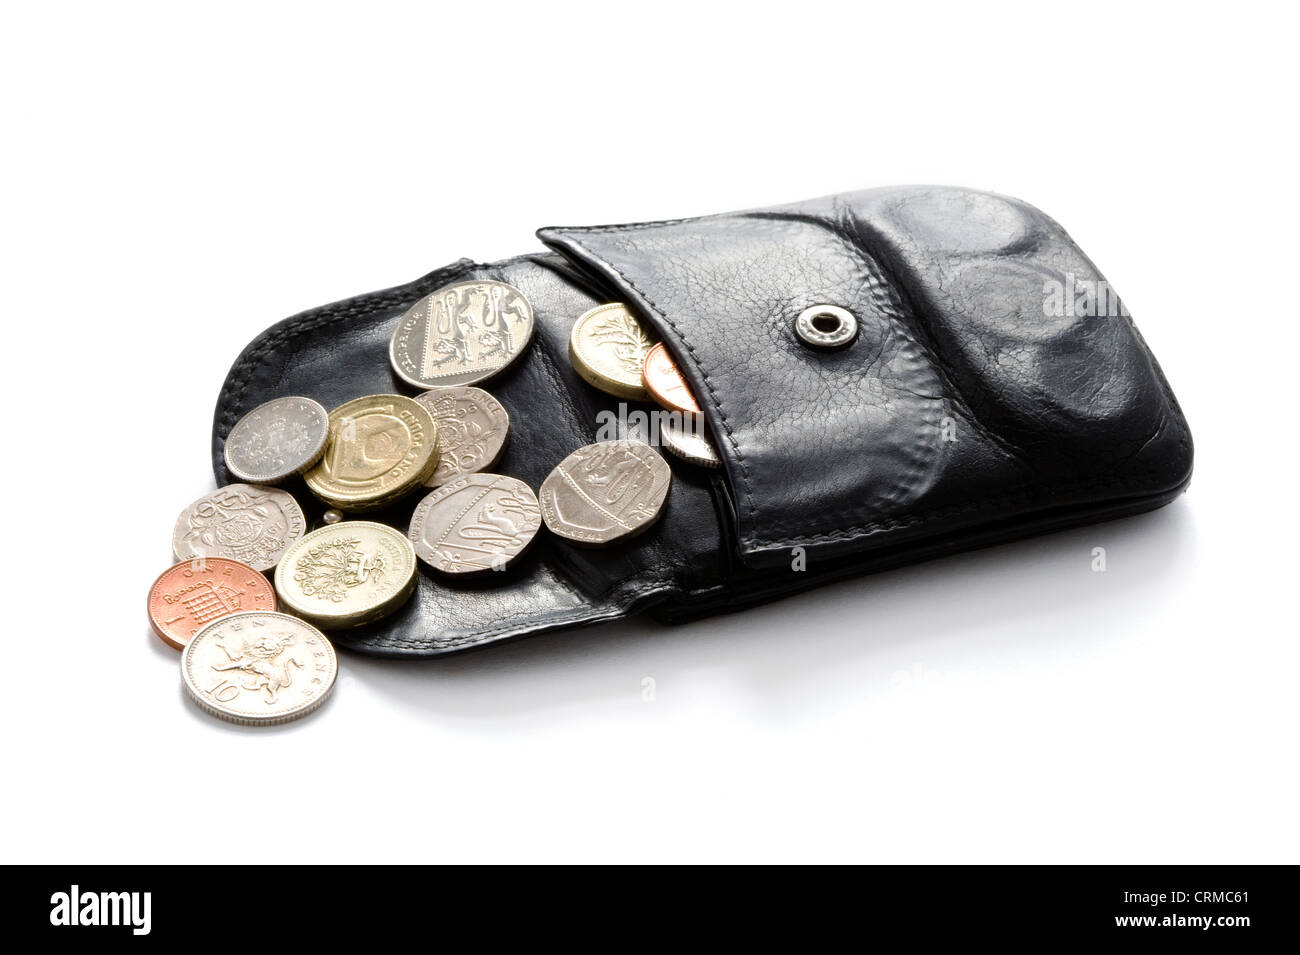 open wallet or purse with sterling coins isolated on white - Stock Image